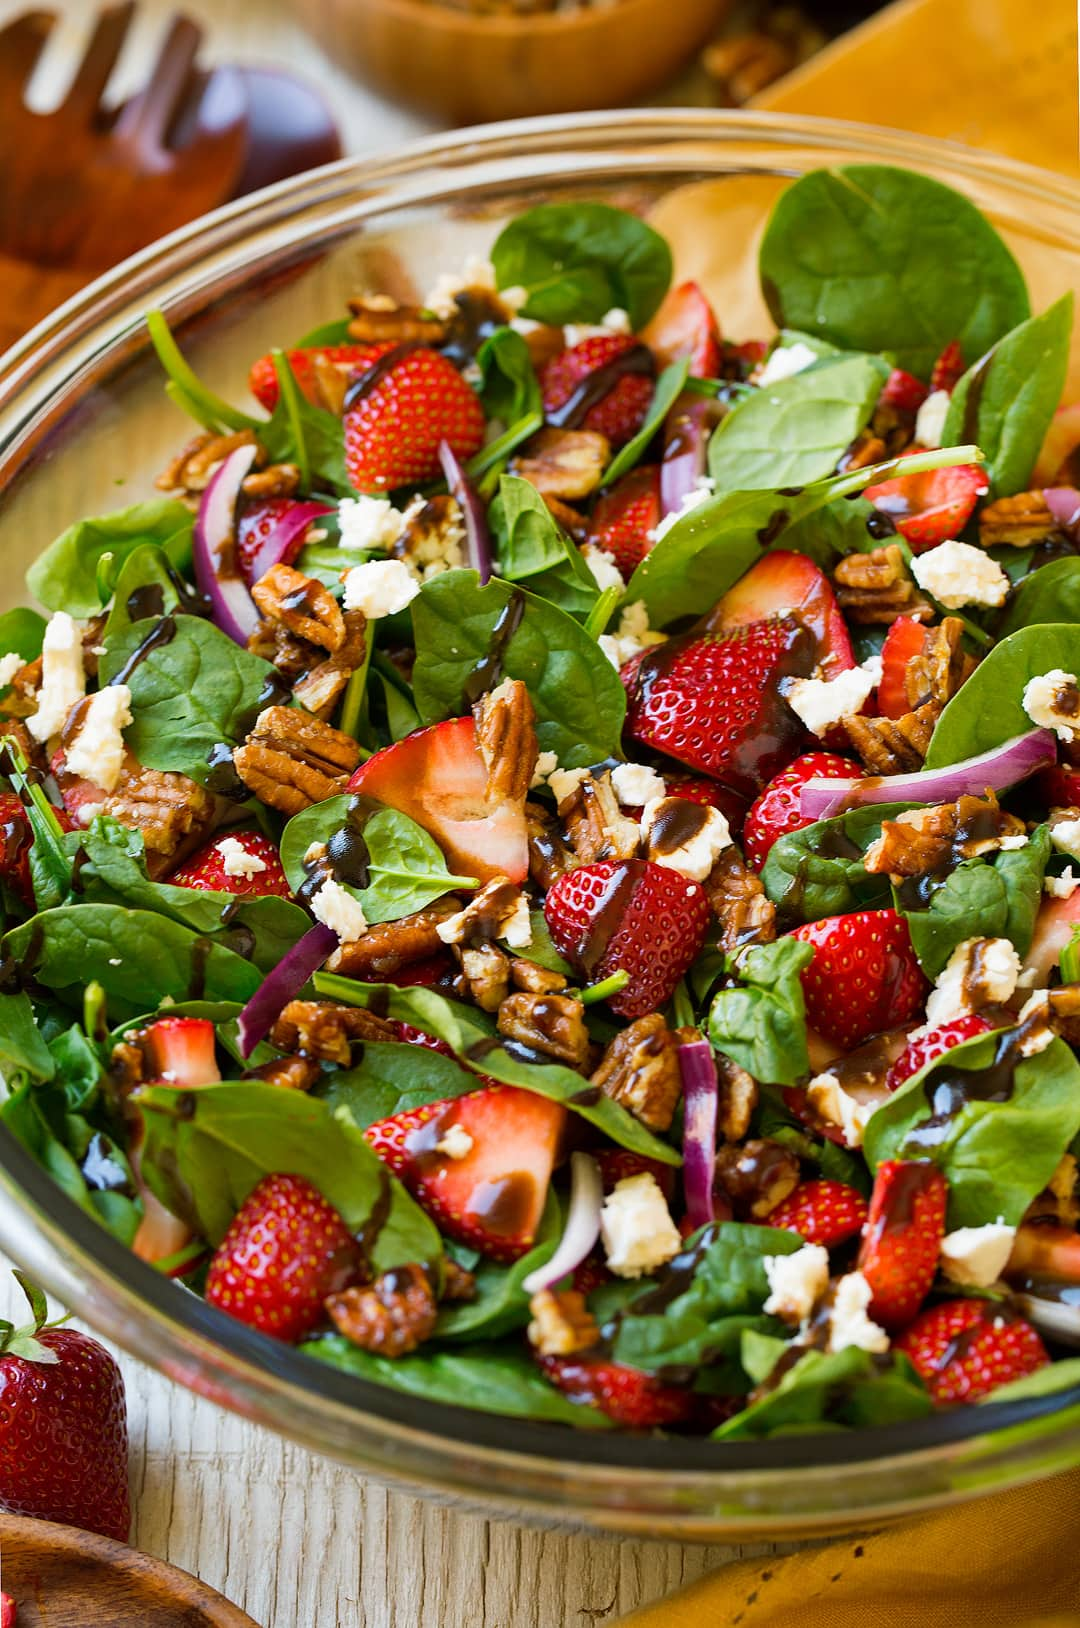 A close up of a Strawberry Spinach Salad in a glass bowl topped with a balsamic vinaigrette